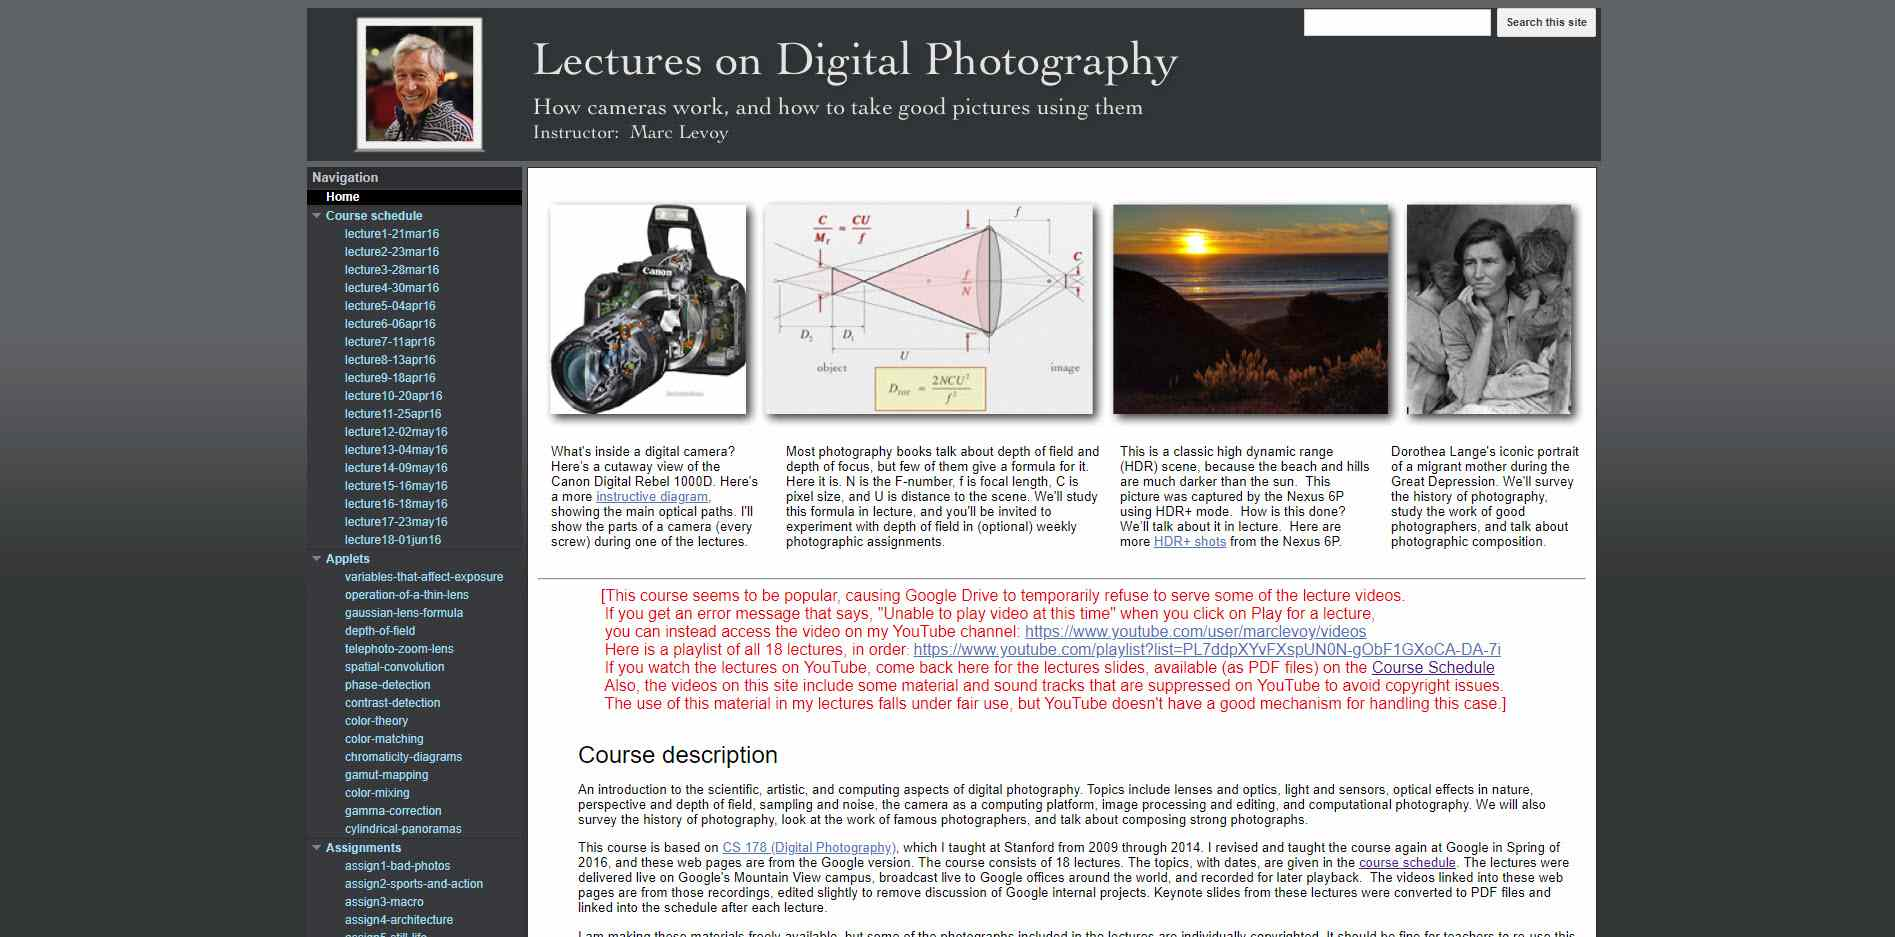 The Lectures on Digital Photography class page.